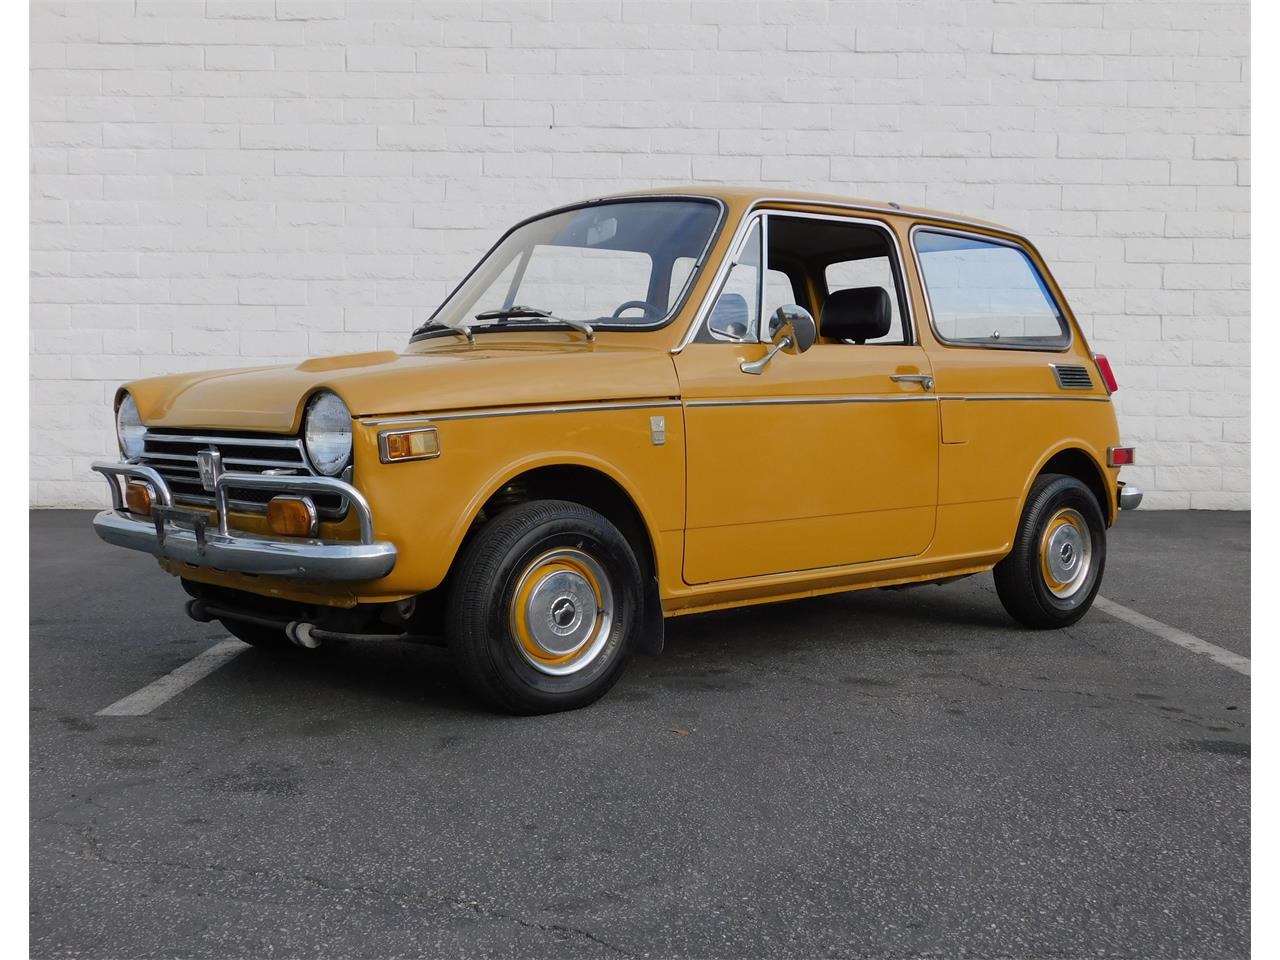 Large Picture of Classic 1972 N600 located in Carson California - $8,750.00 - K36Y